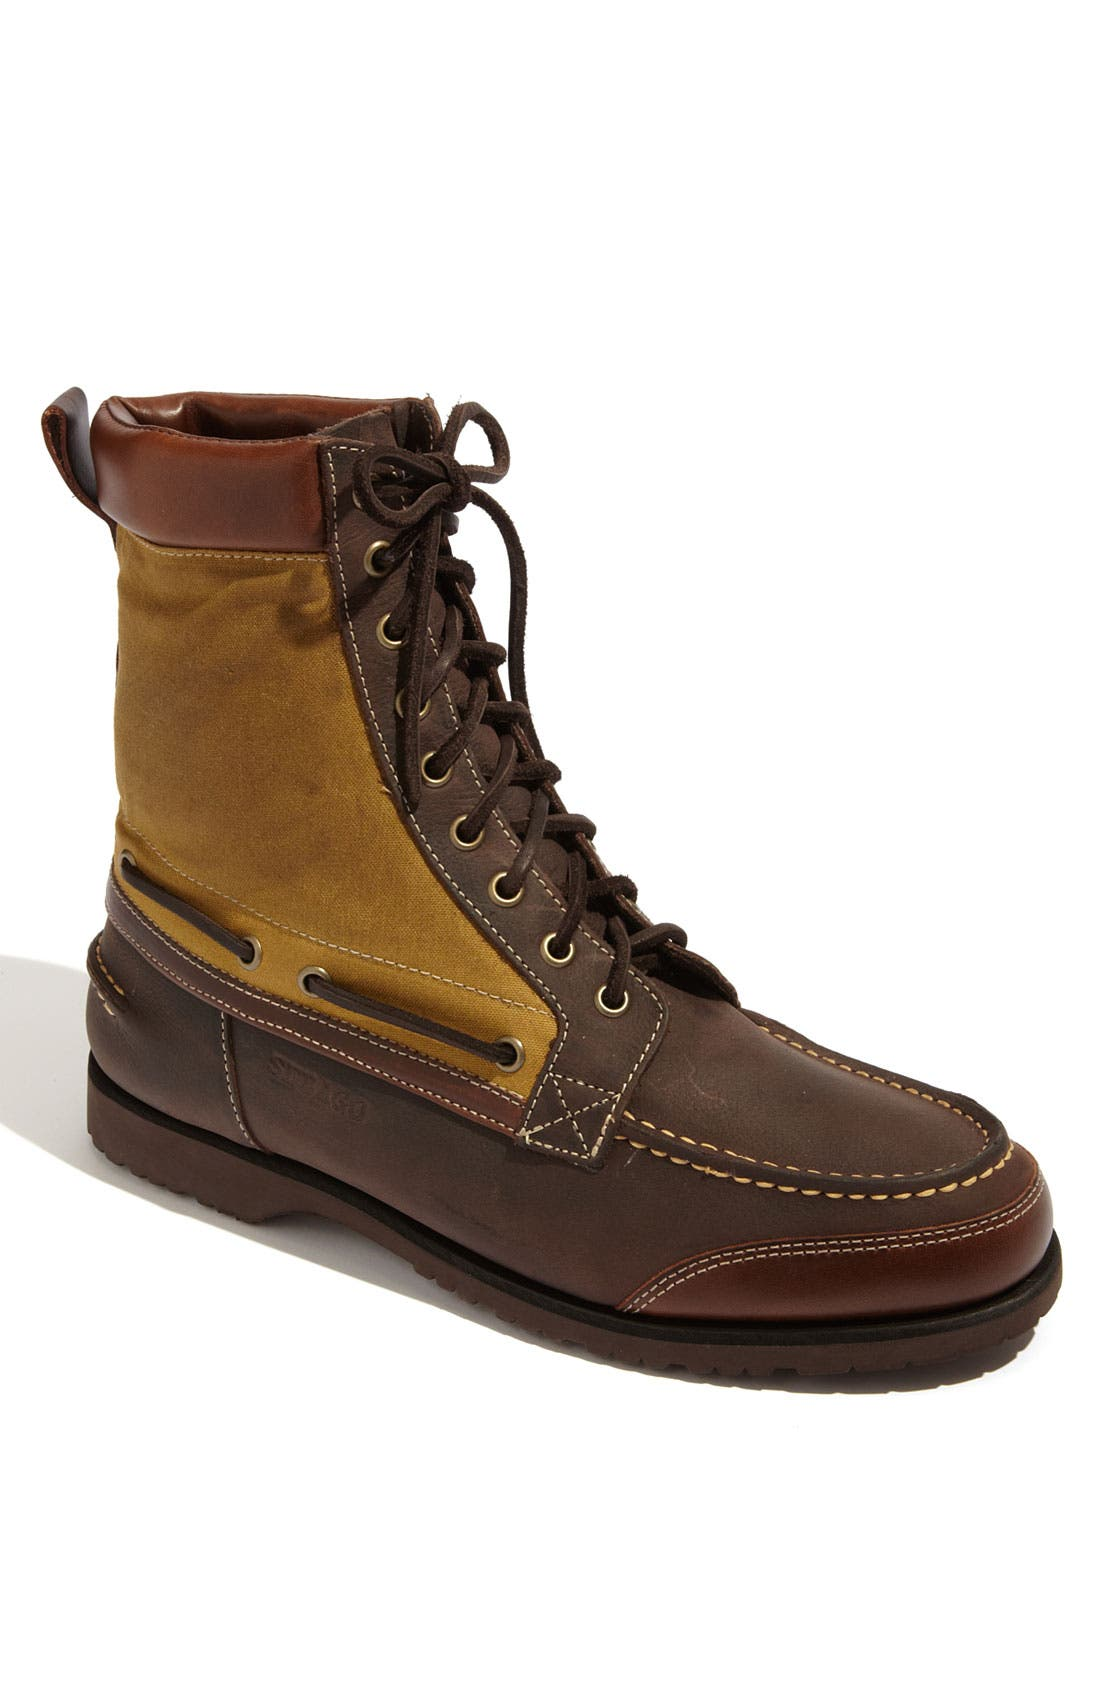 Alternate Image 1 Selected - Sebago 'Osmore' Boot